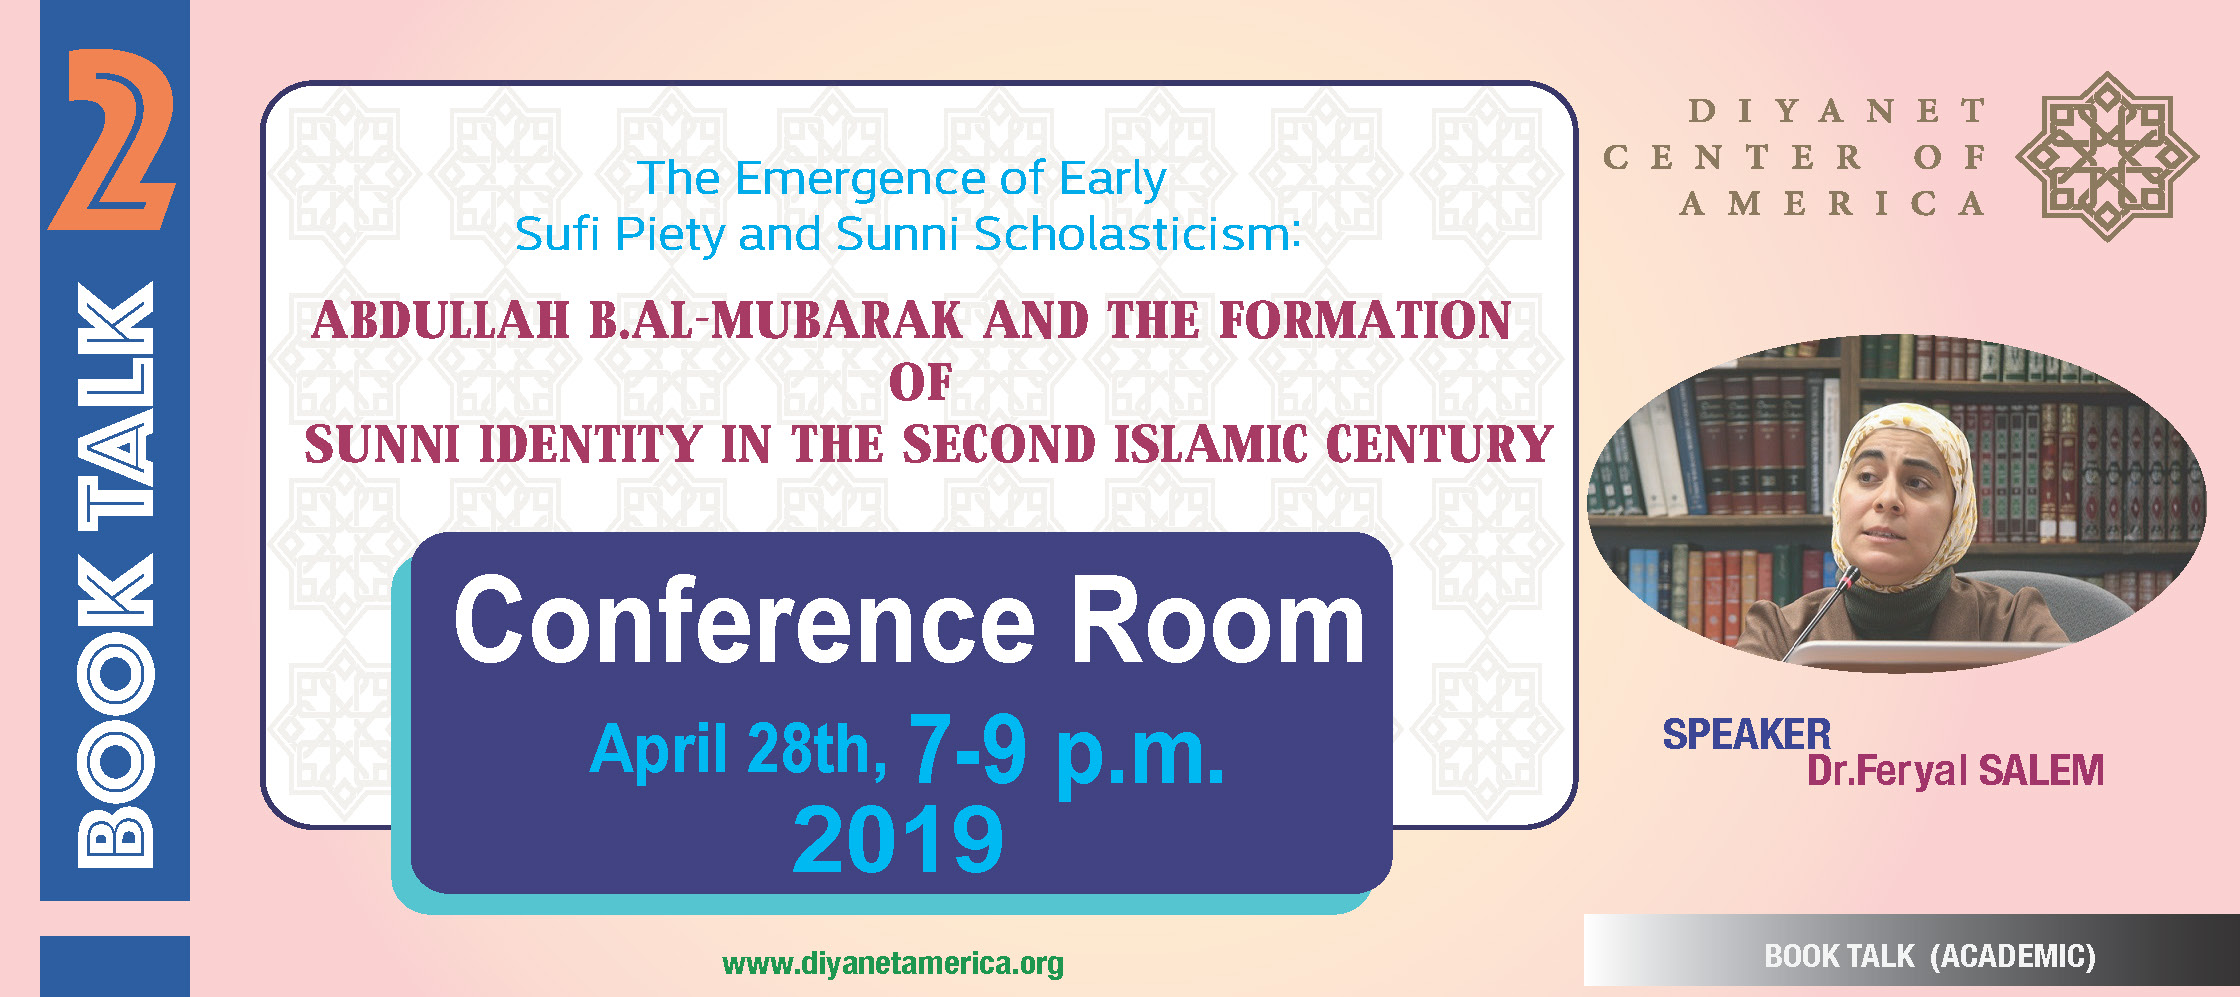 The Emergence of Early Sufi Piety and Sunni Scholasticism: Abdullah b. Al-Mubarak and the Formation of Sunni Identity in the Second Islamic Century